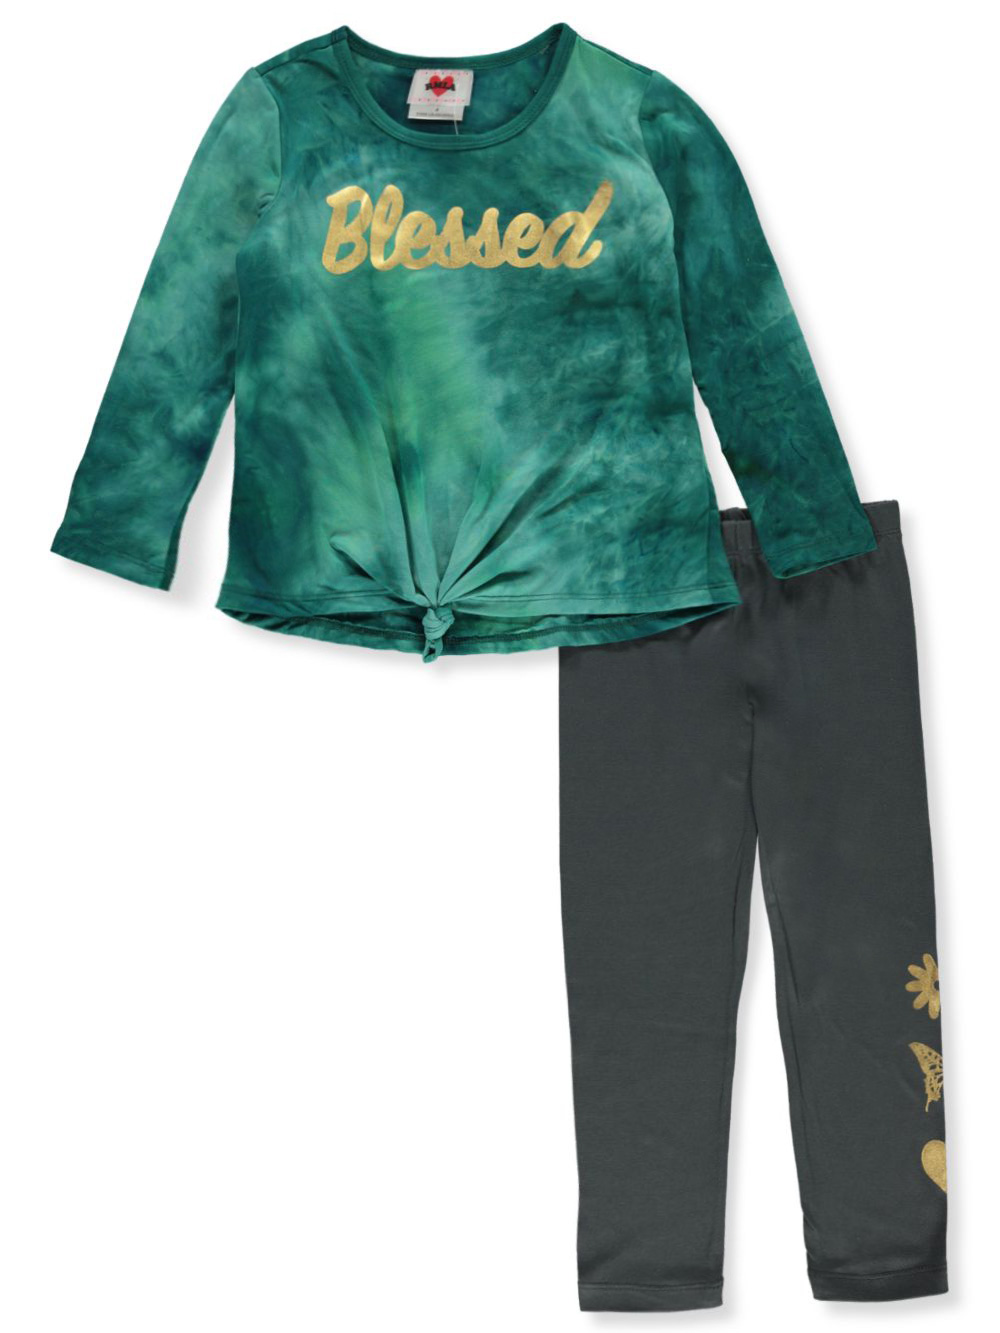 Girls' Blessed 2-Piece Leggings Set Outfit